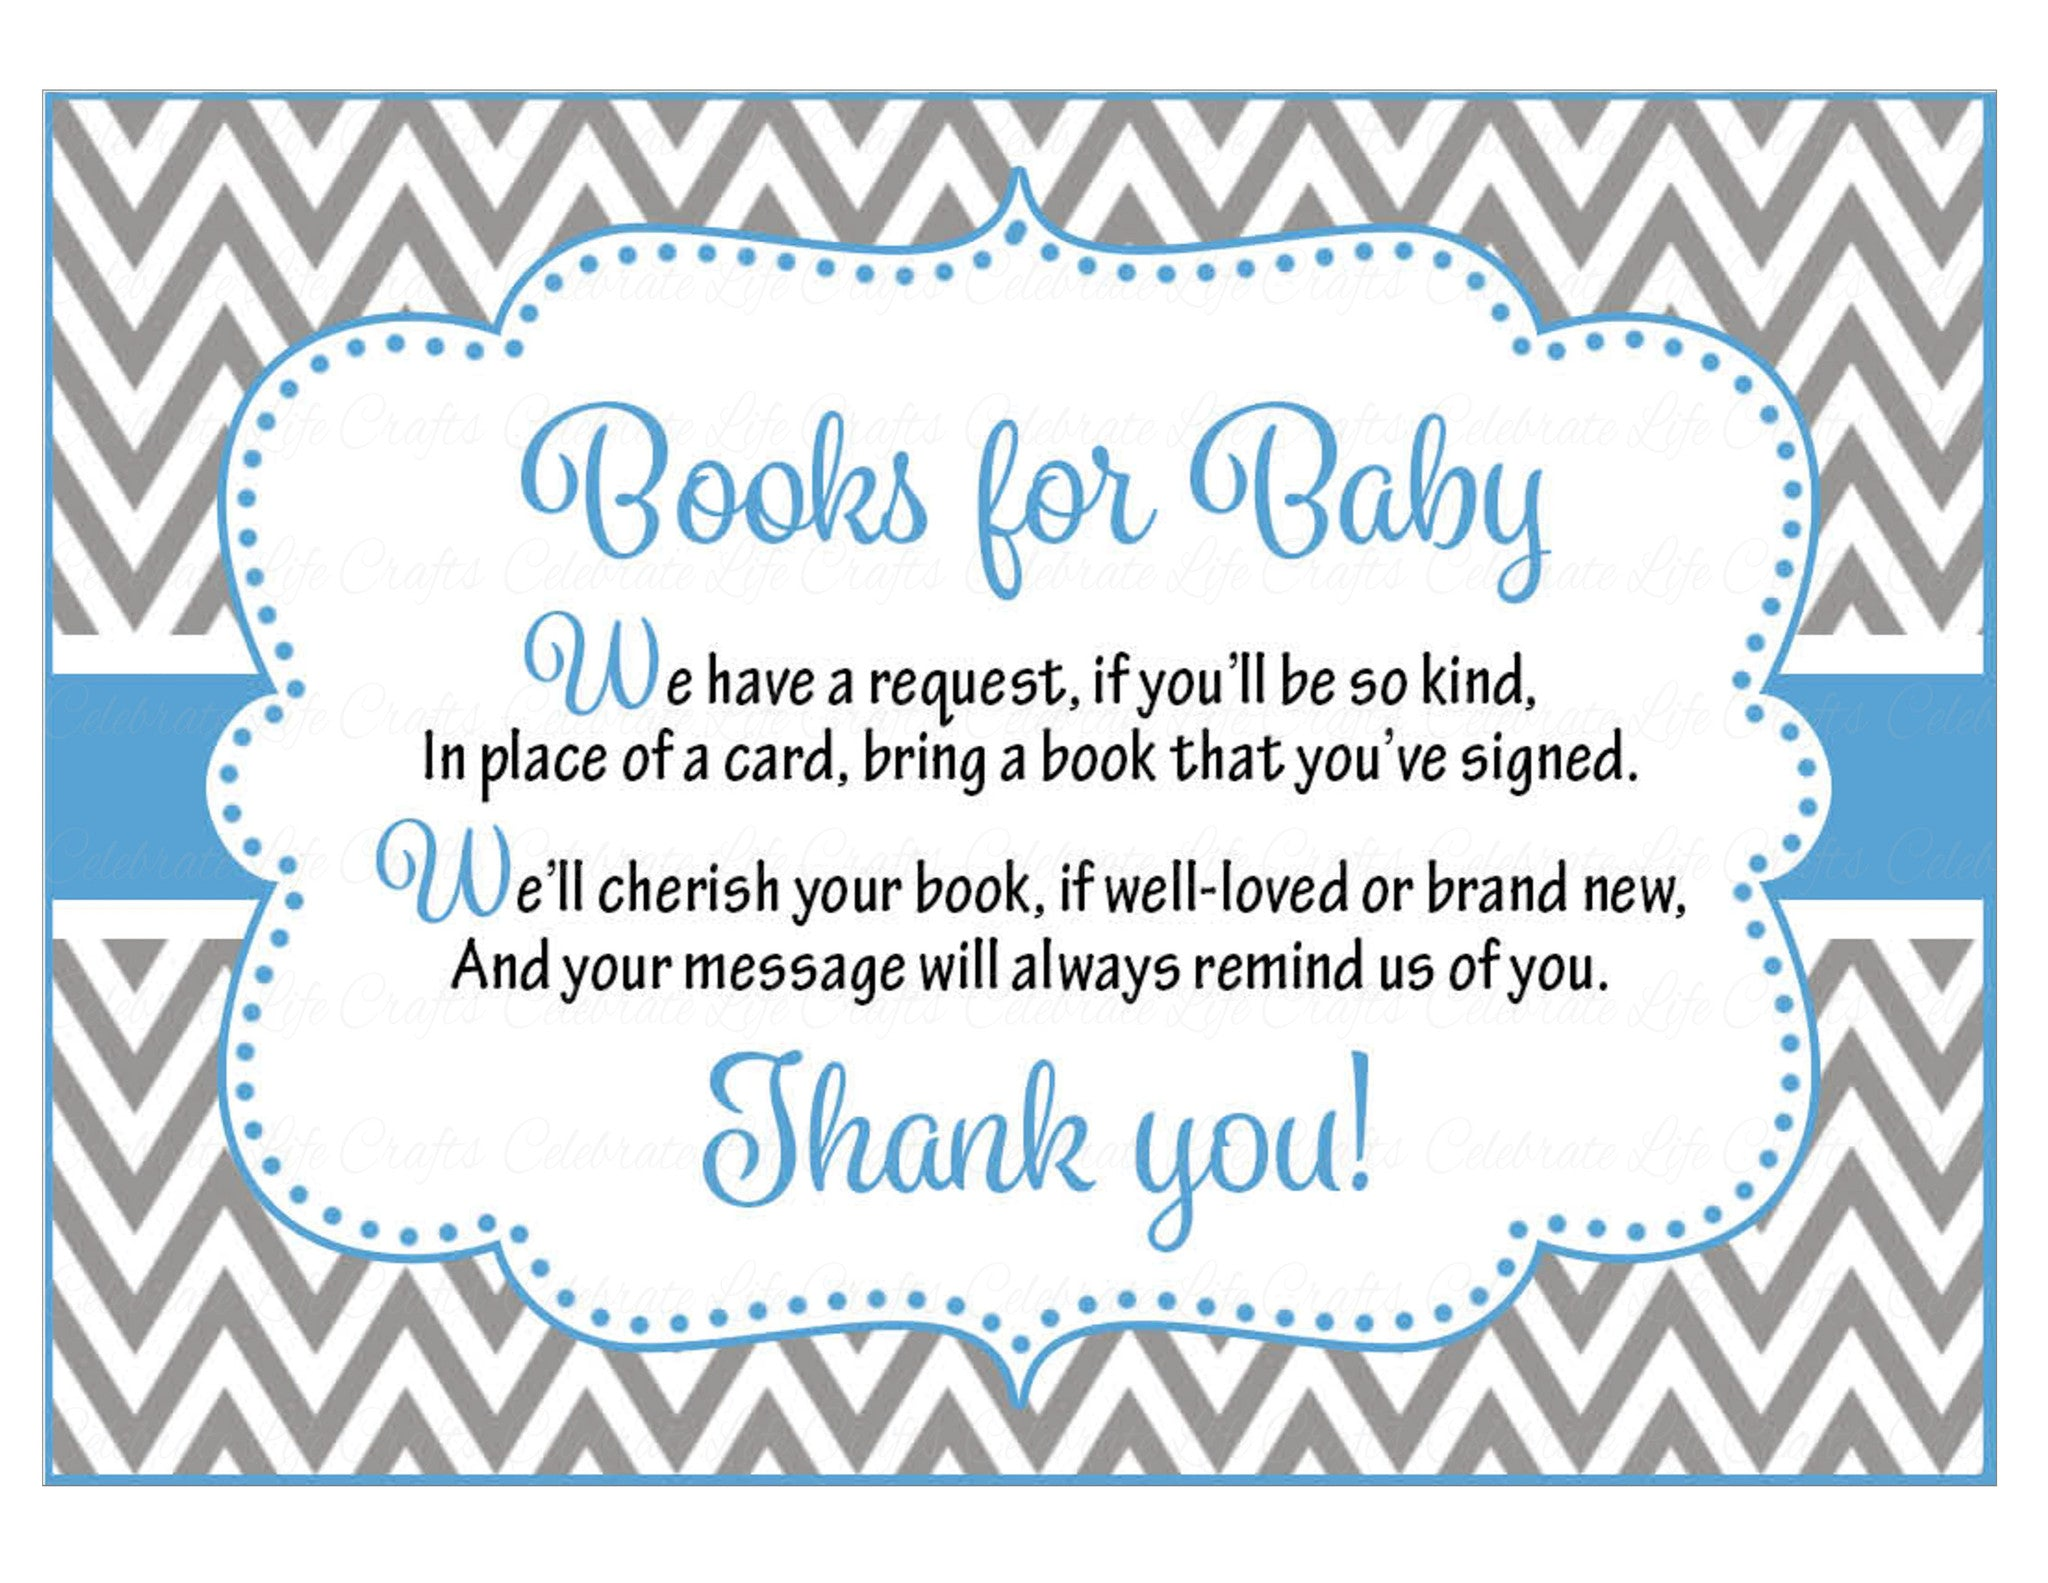 Books for Baby Invitation Inserts for Baby Shower - Owl Baby Shower ...